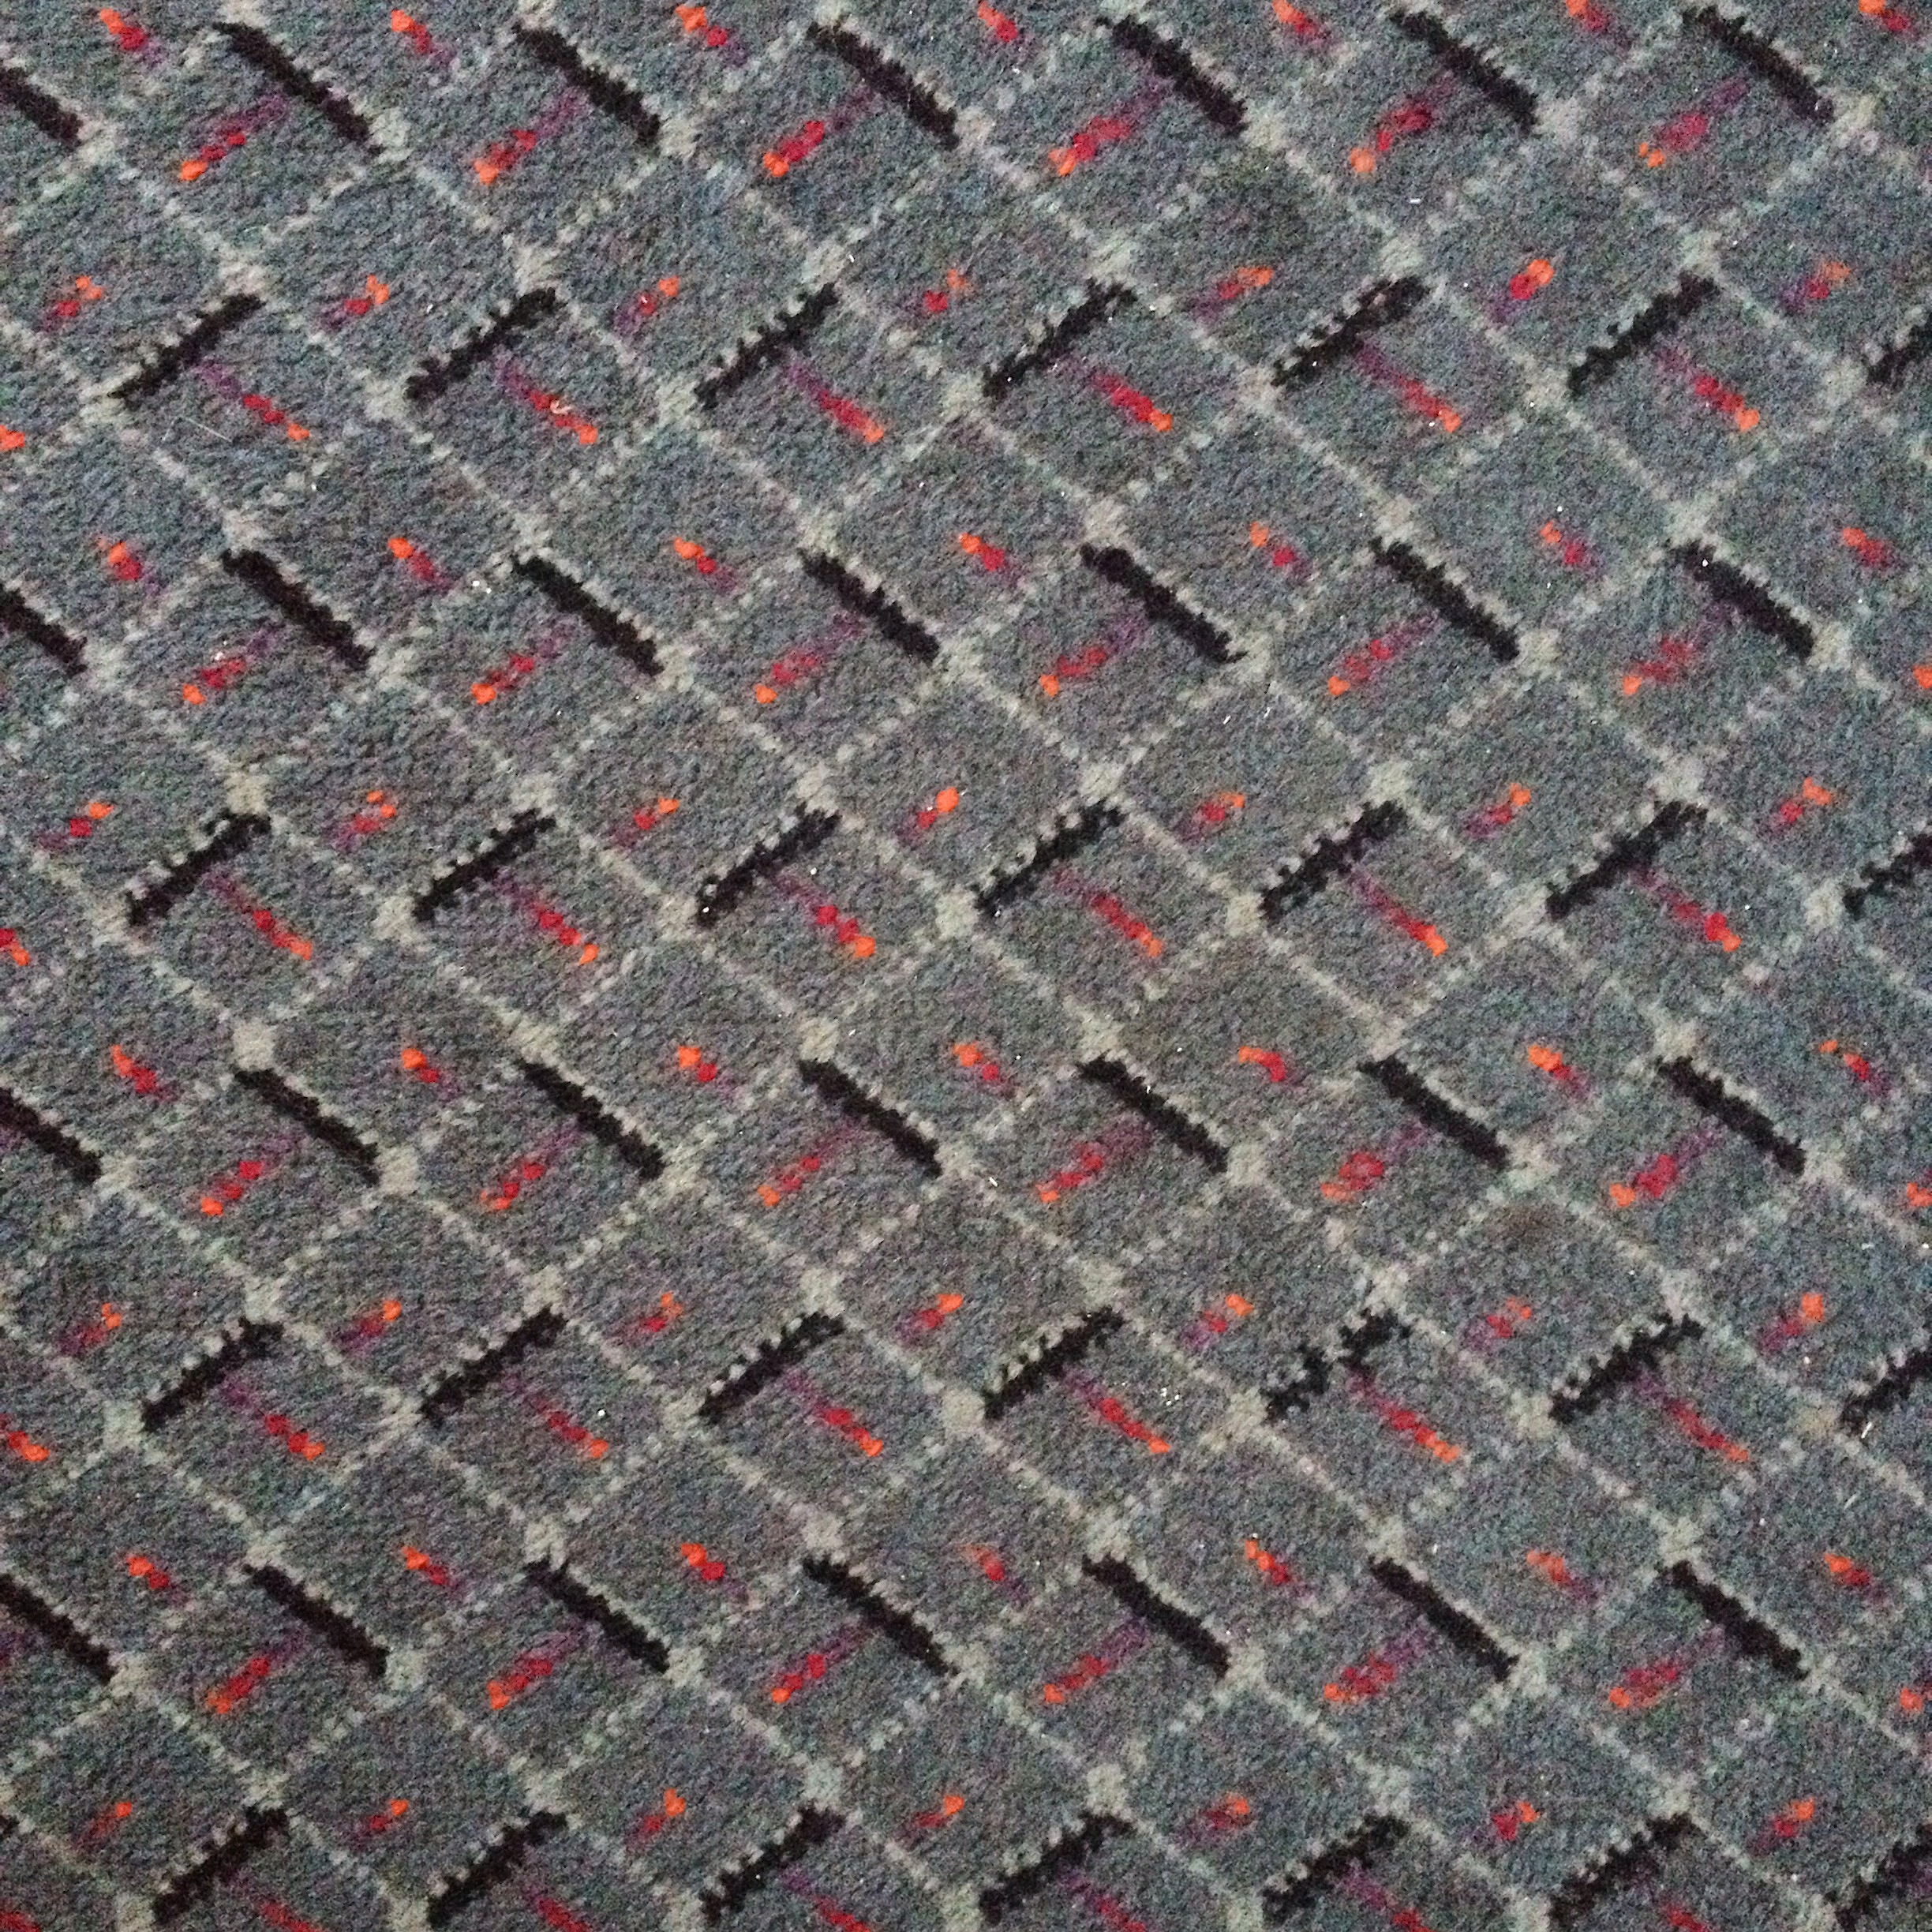 carpet sample 4